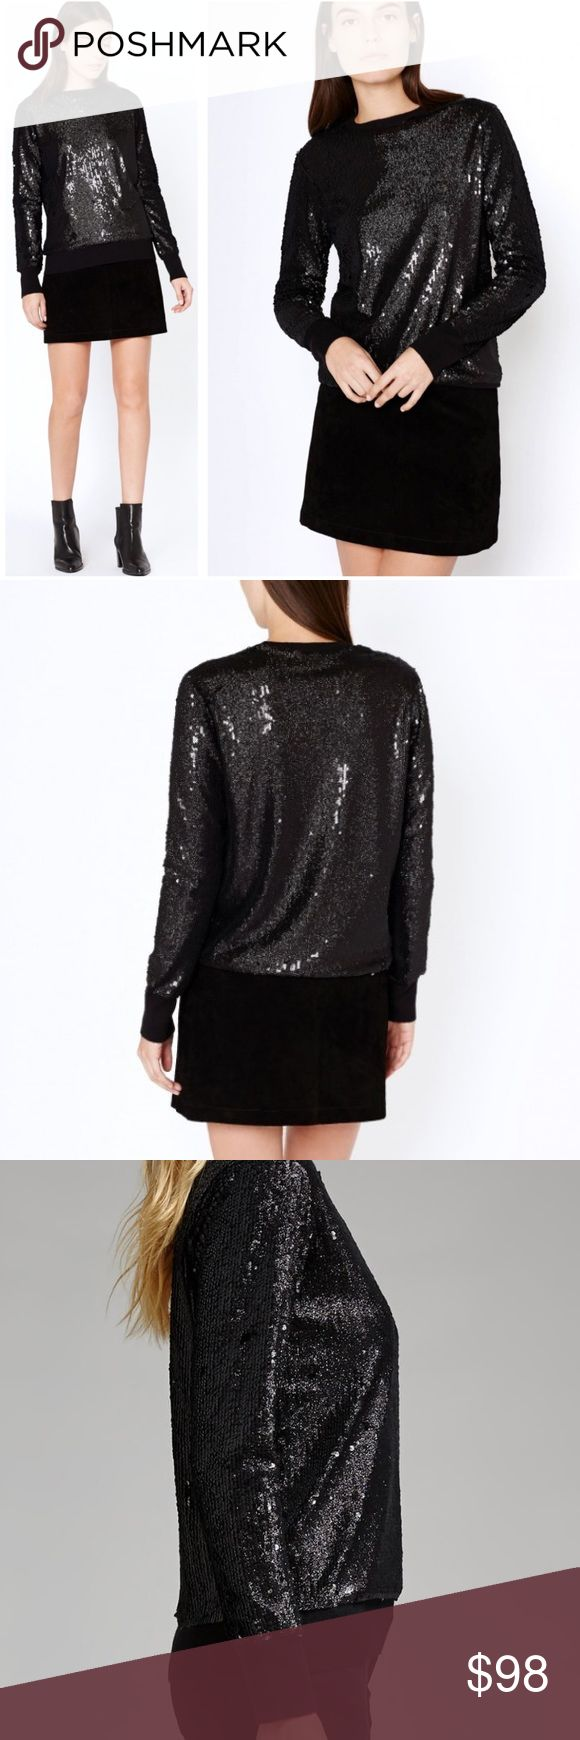 """•Equipment• Shane Black Sequin Sweater Equipment Femme Shane Black Sequin Sweater. Perfect for this Holiday Season. In Great Used Condition, Minor Wear Along Trim. 35% Viscose, 25% Wool, 20% Nylon, 20% Poly. When Laying Flat: Bust Measures Approximately 18"""" Across, Length 23"""" Equipment Sweaters Crew & Scoop Necks"""